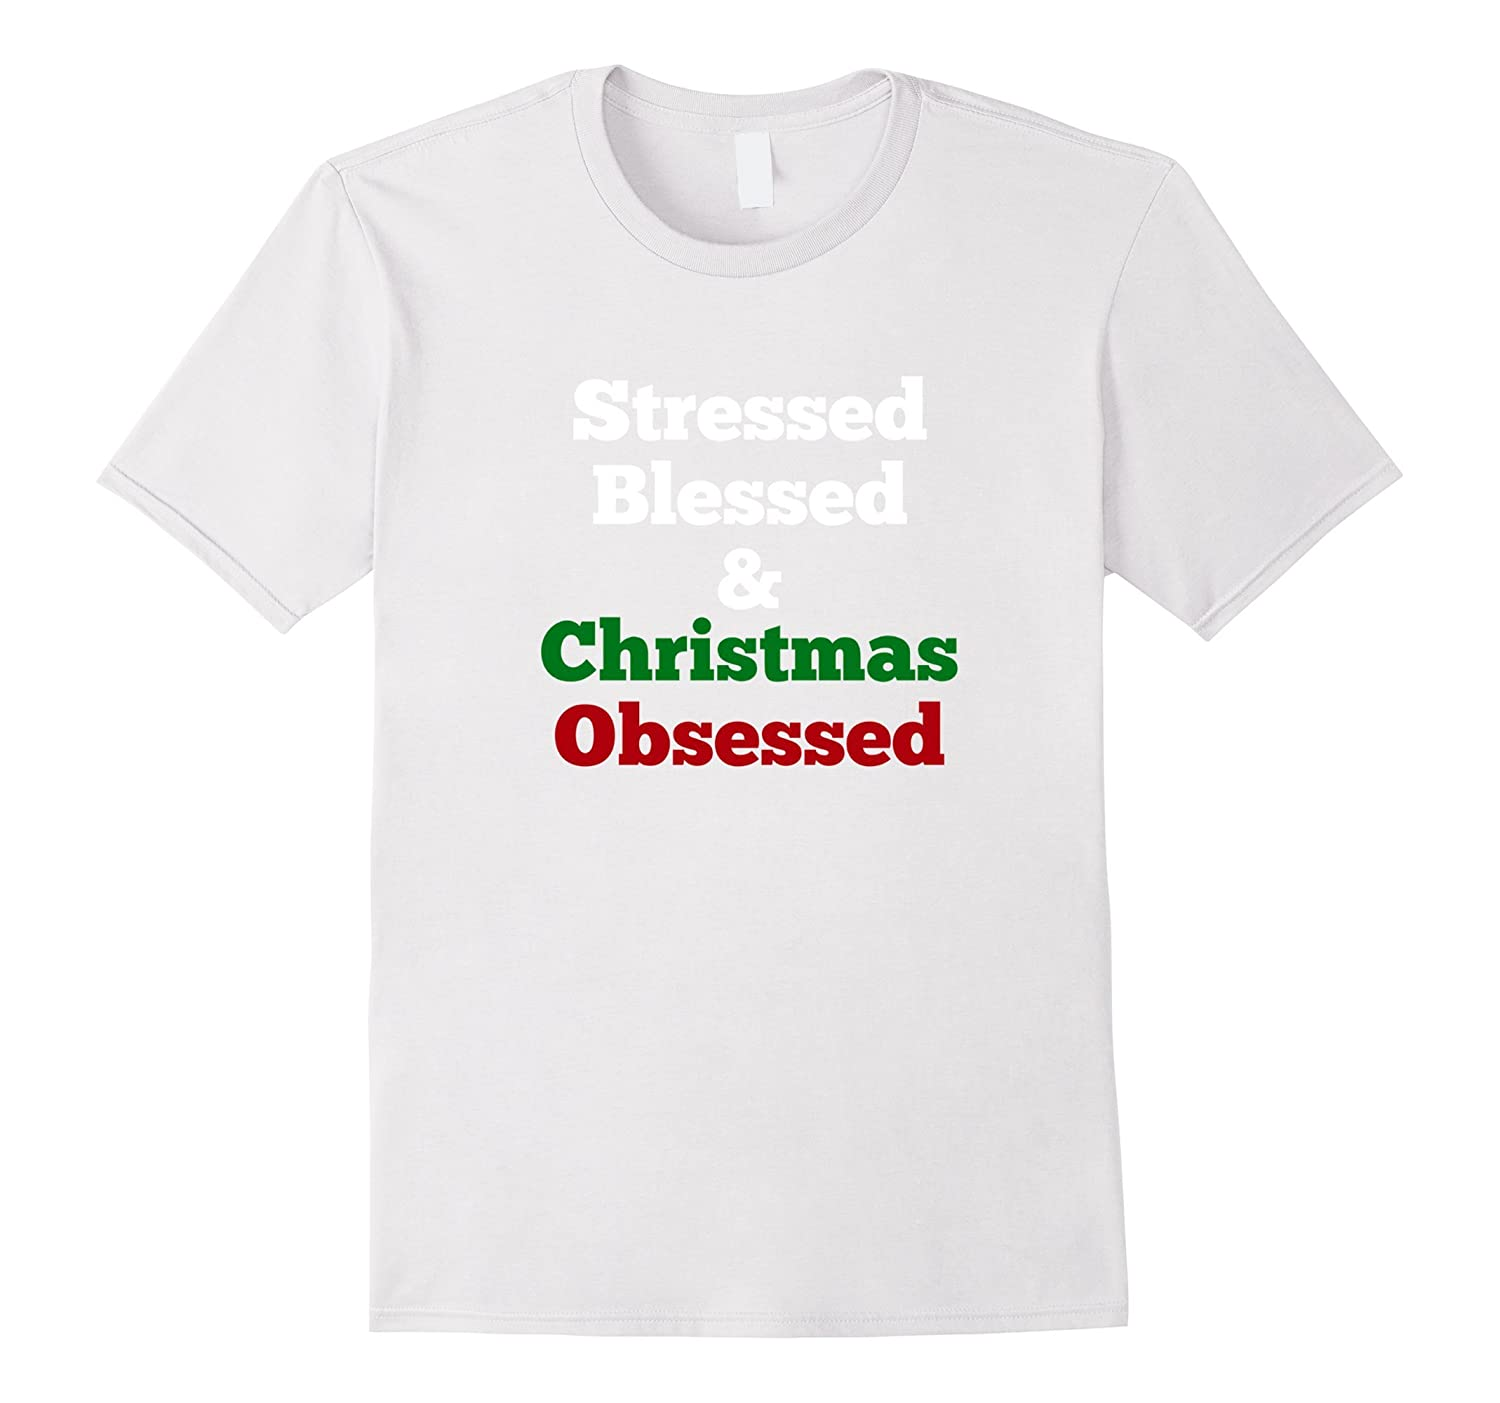 240125a5 Stressed Blessed and Christmas Obsessed Funny Holiday Shirt-ANZ ...